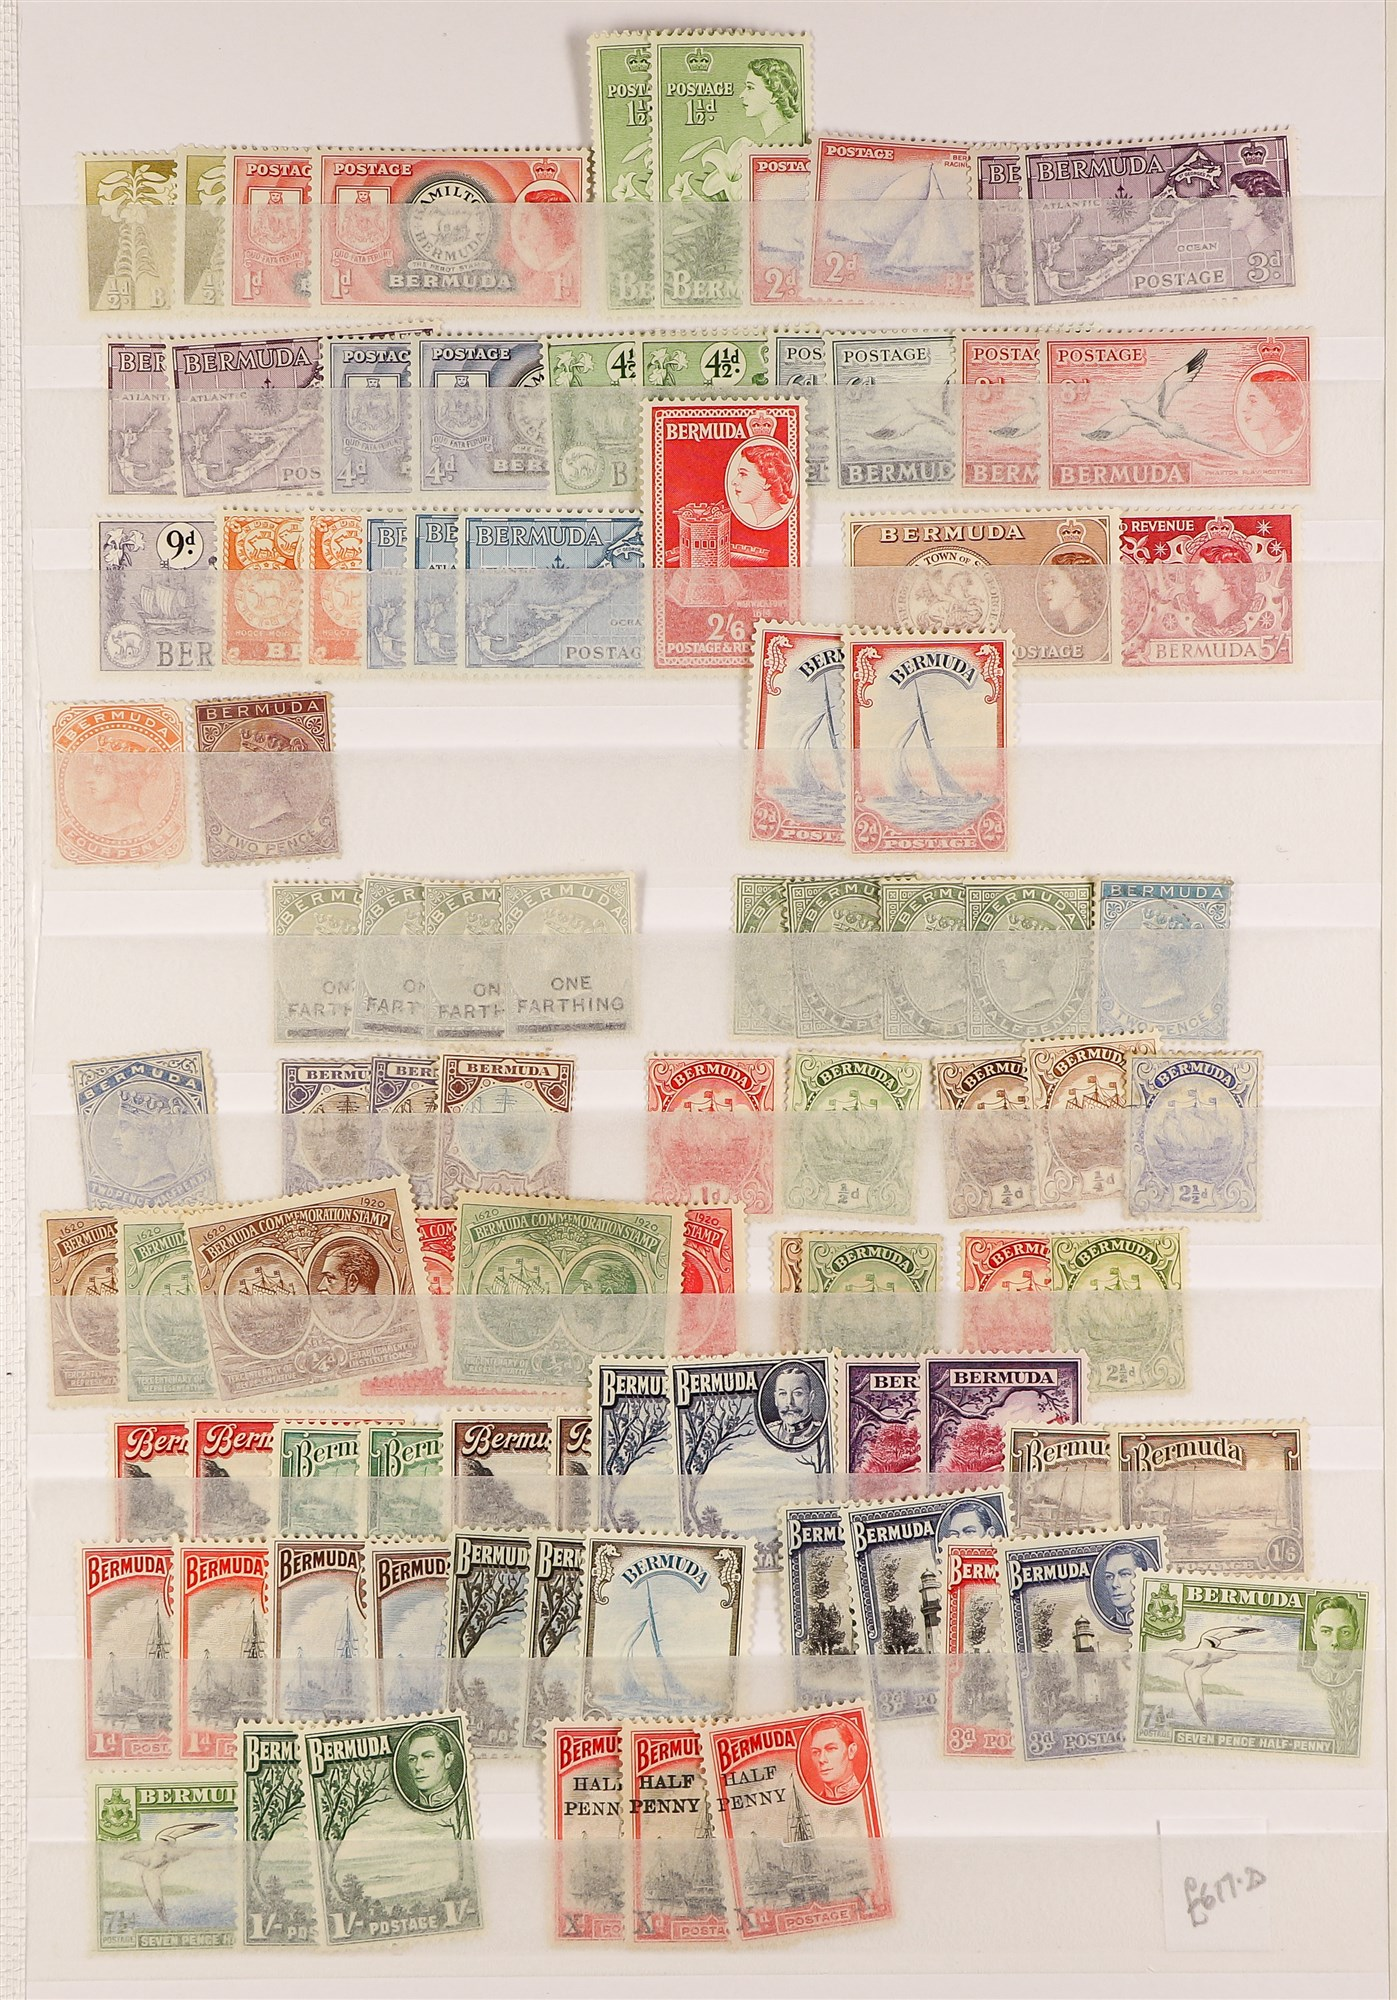 COLLECTIONS & ACCUMULATIONS COMMONWEALTH AND GB accumulation on pages and stock cards, S.T.C. £3000. - Image 3 of 5